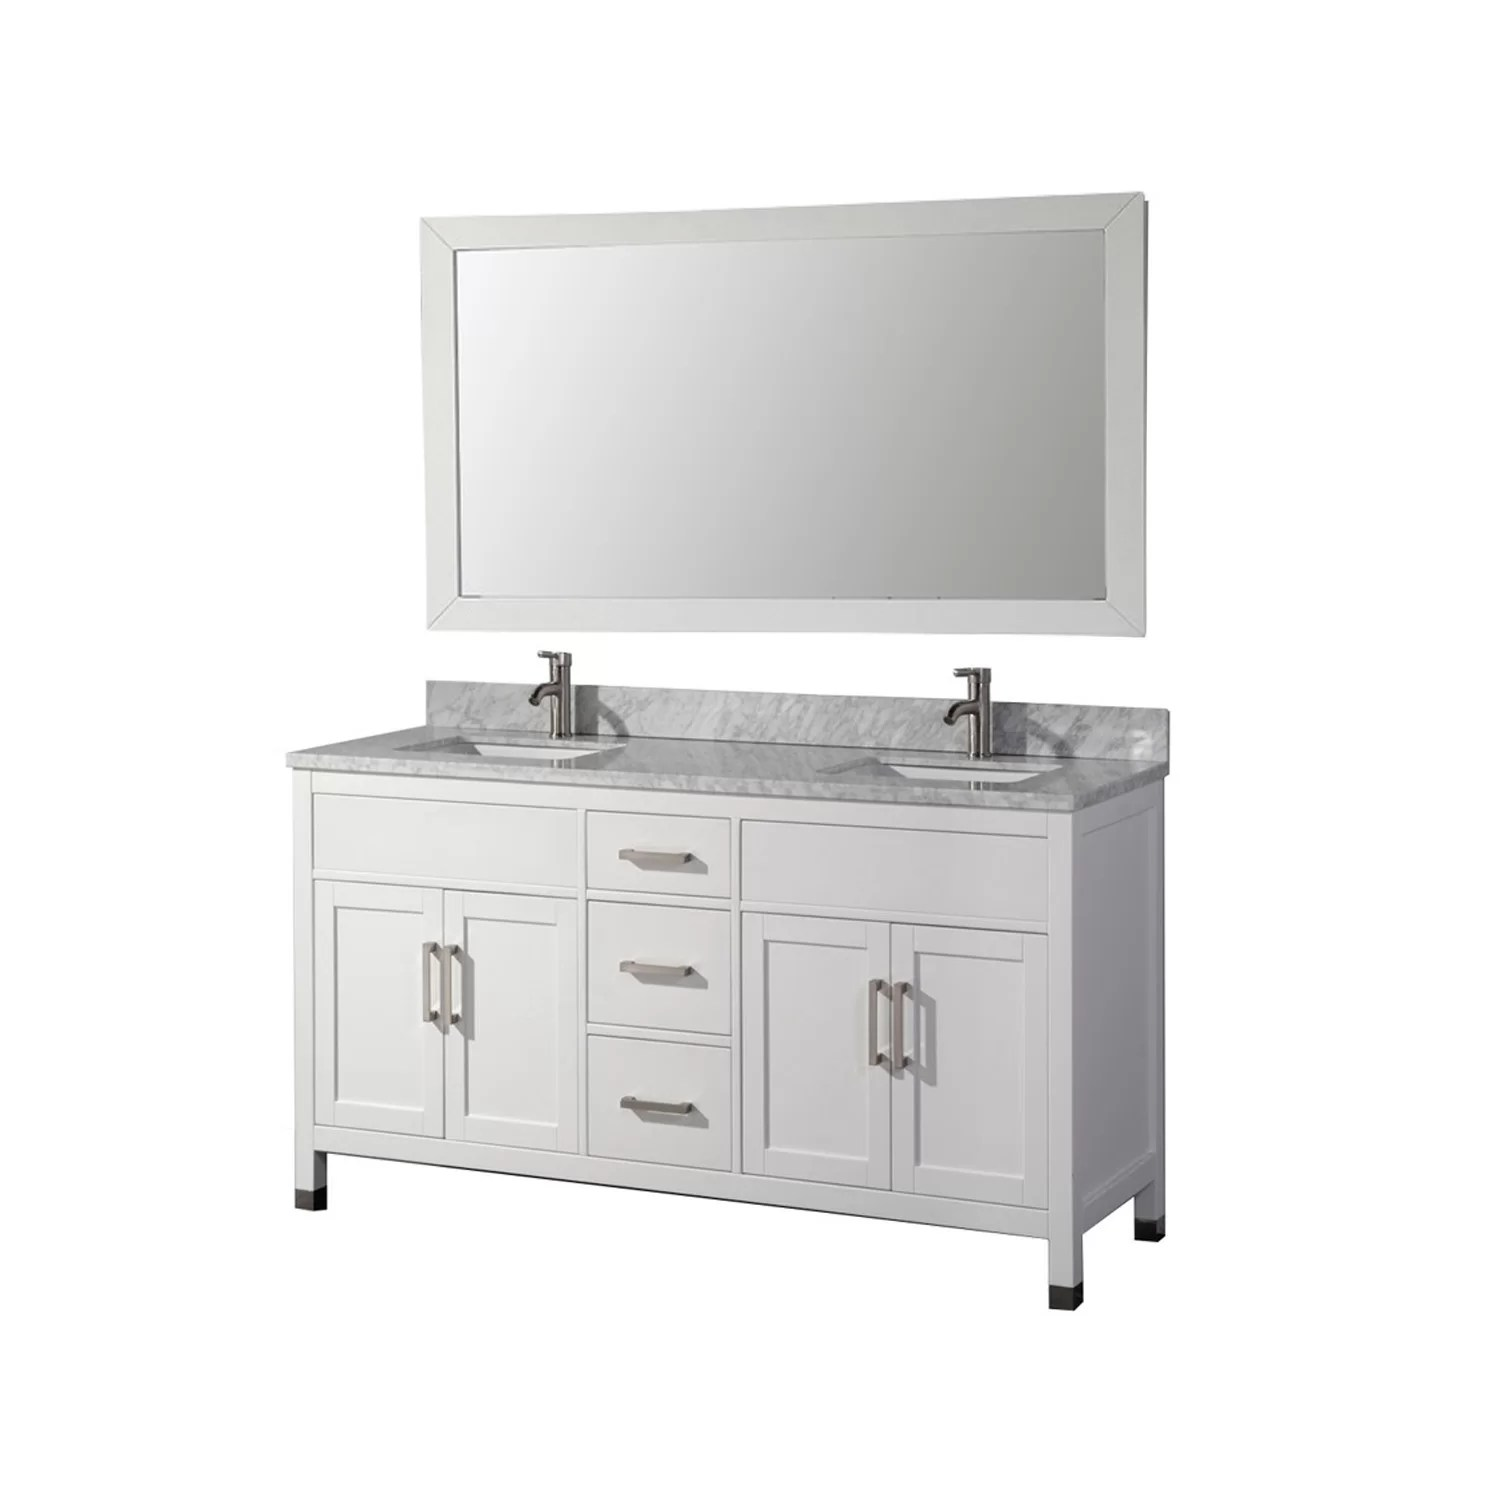 Mirrored Bathroom Vanity With Sink Mtdvanities Ricca 72 Quot Double Sink Bathroom Vanity Set With